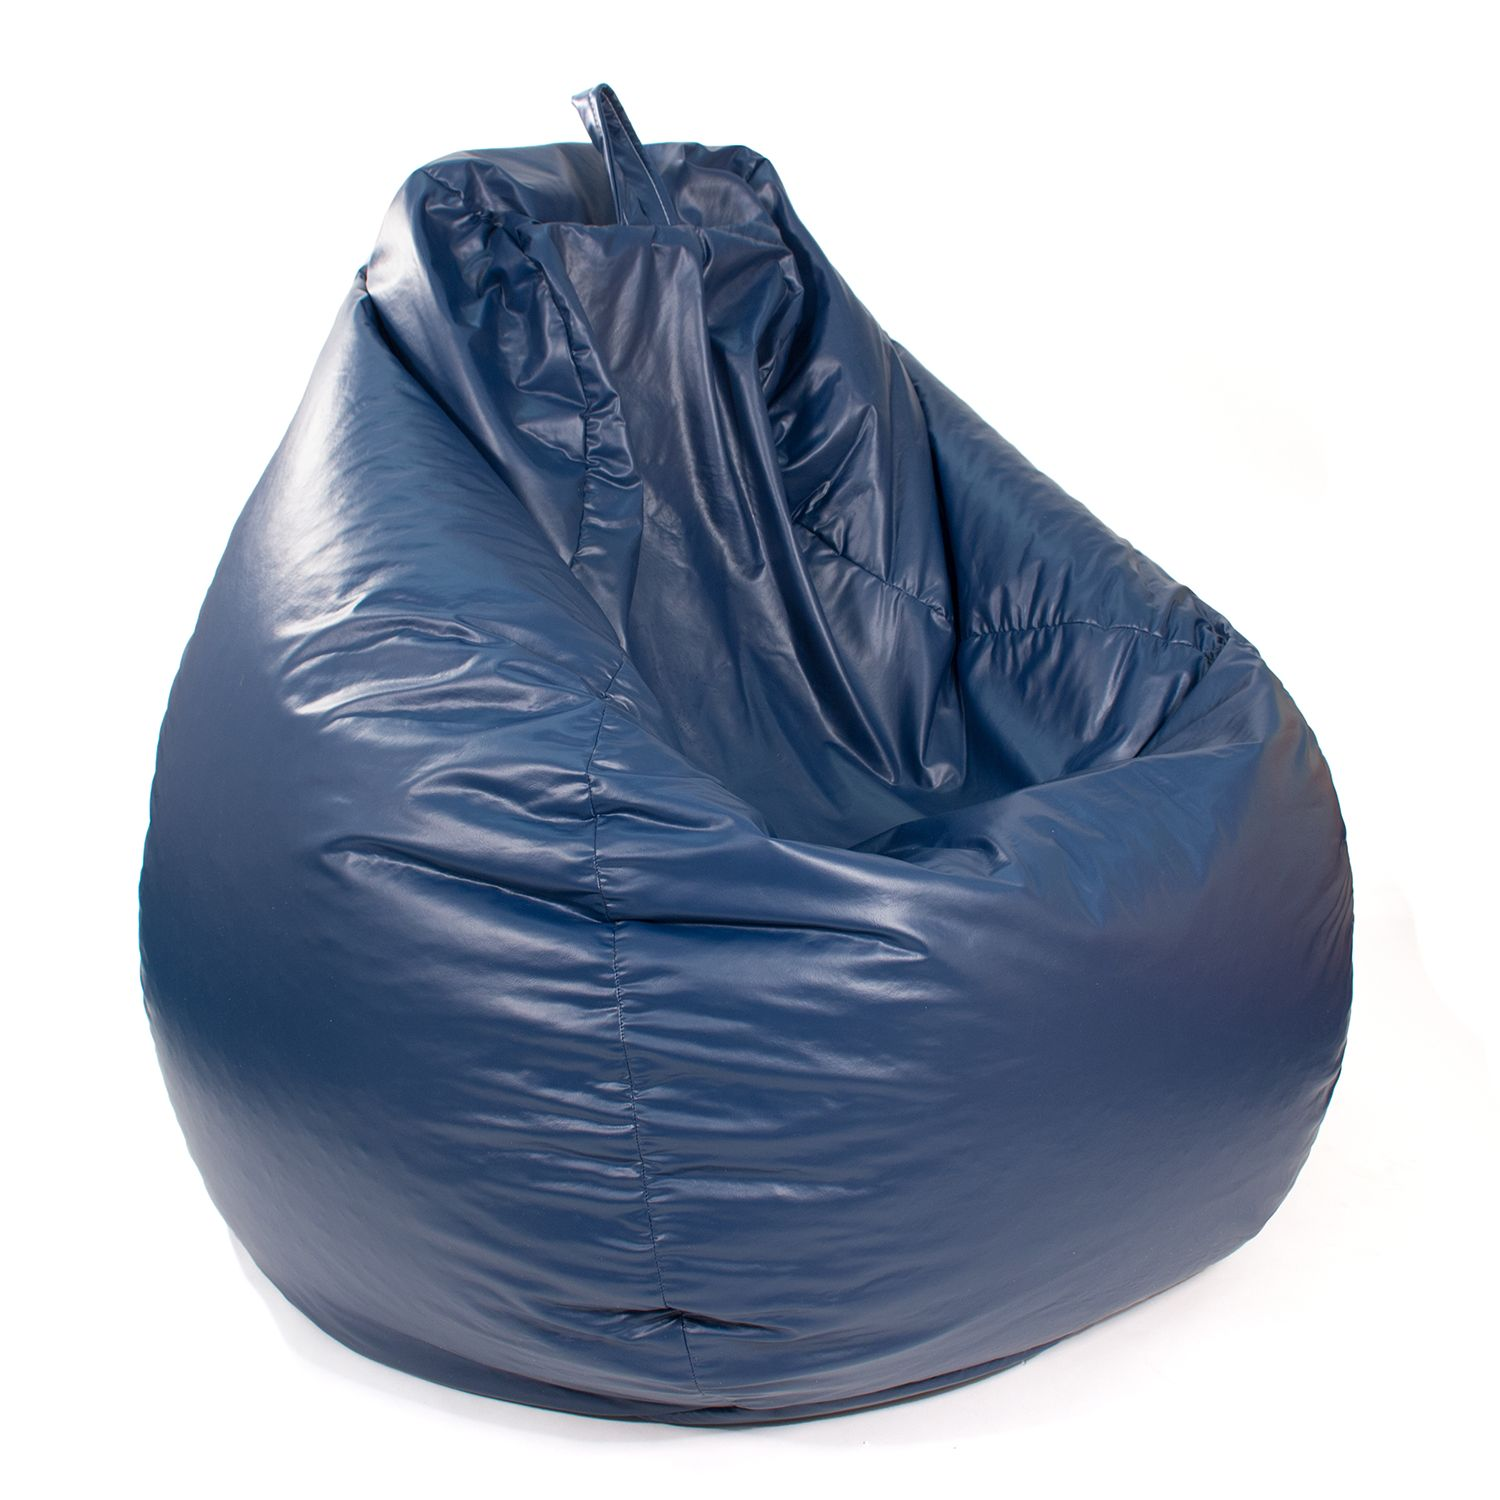 Large Teardrop Faux Leather Bean Bag Chair